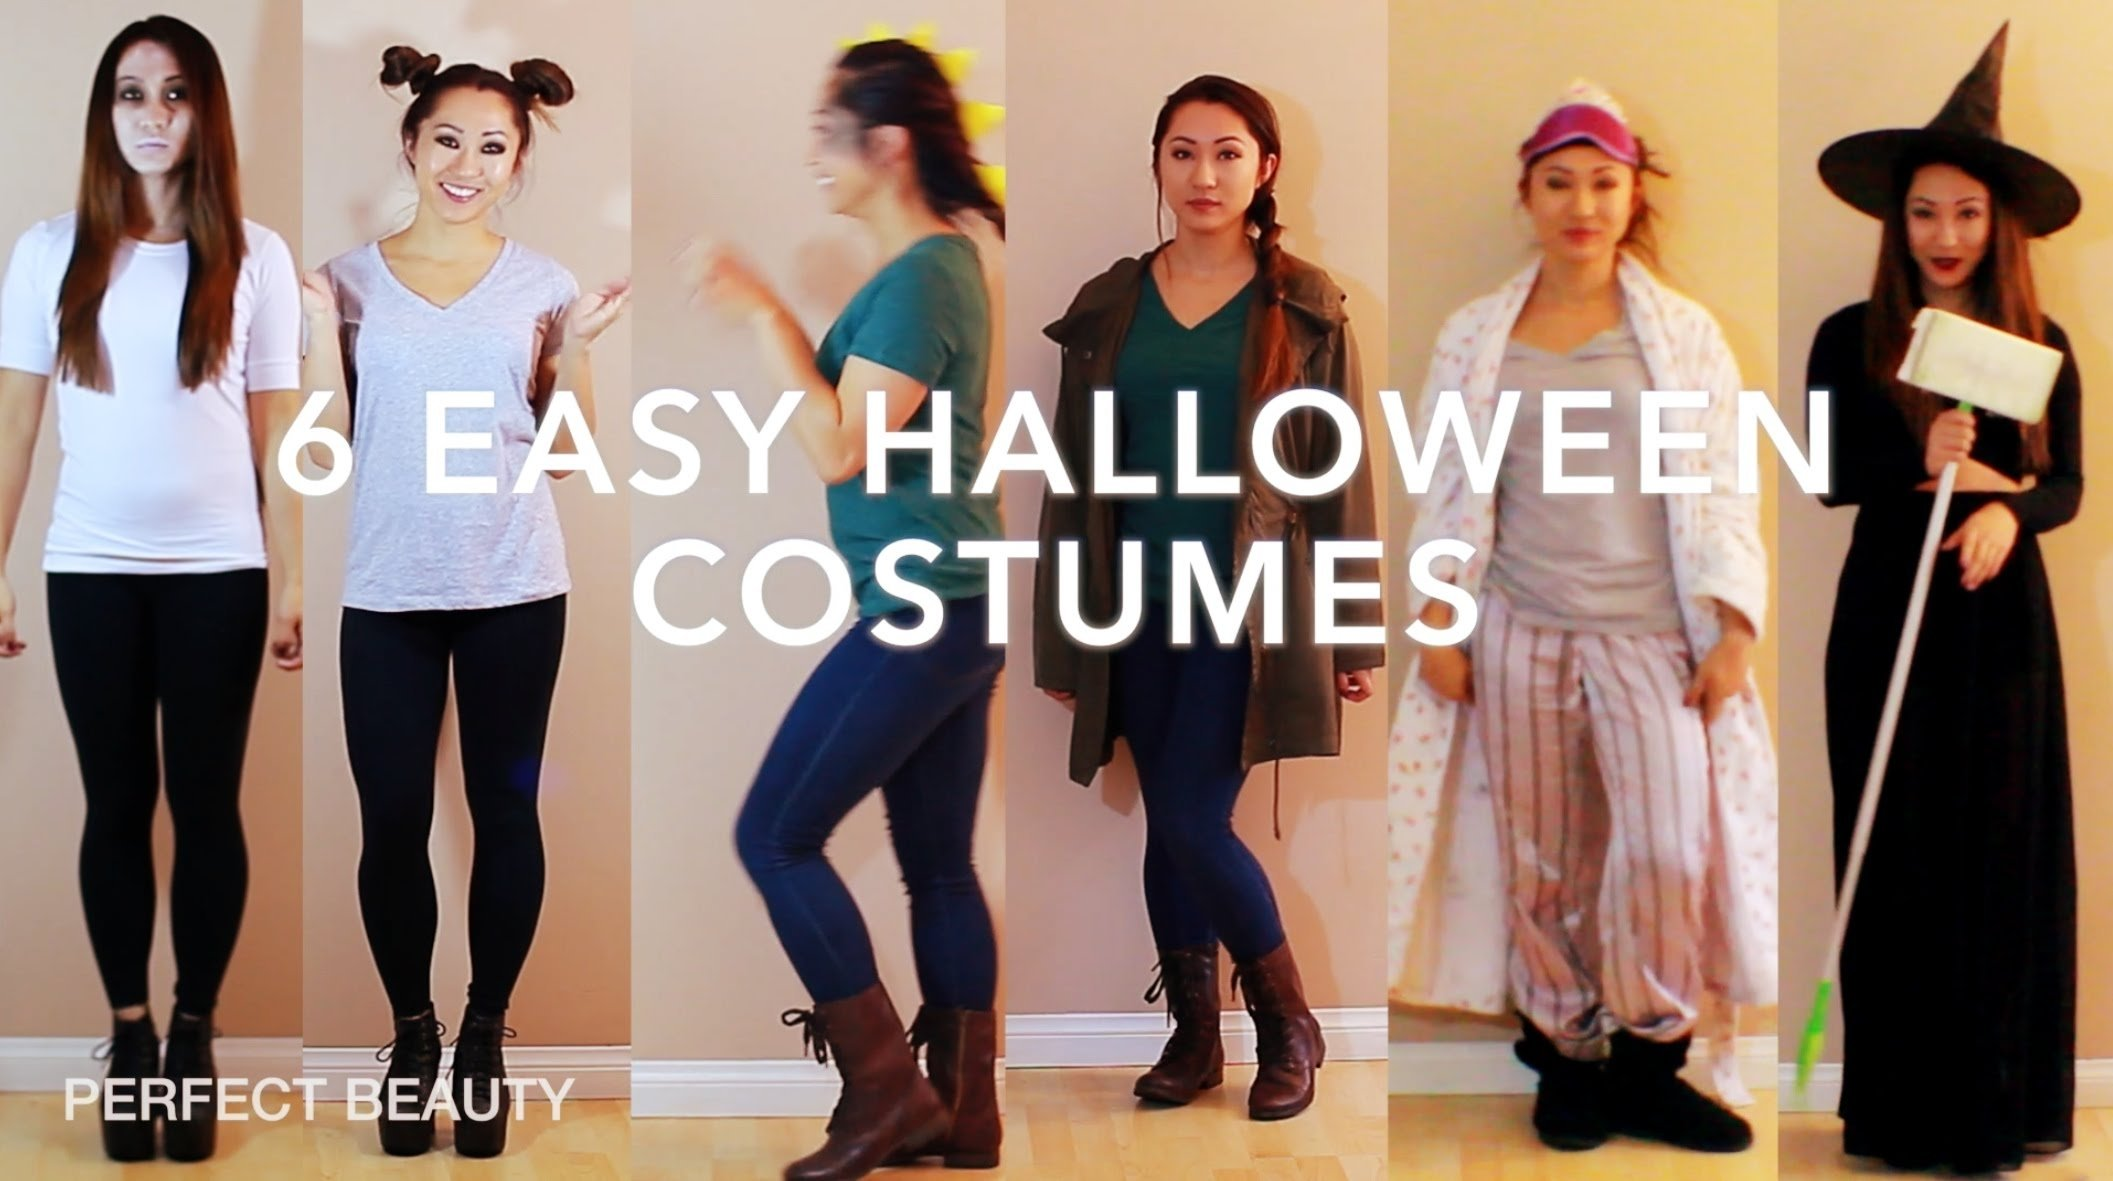 10 Attractive Good Last Minute Halloween Costume Ideas last minute diy halloween costume ideas perfect beauty youtube 26